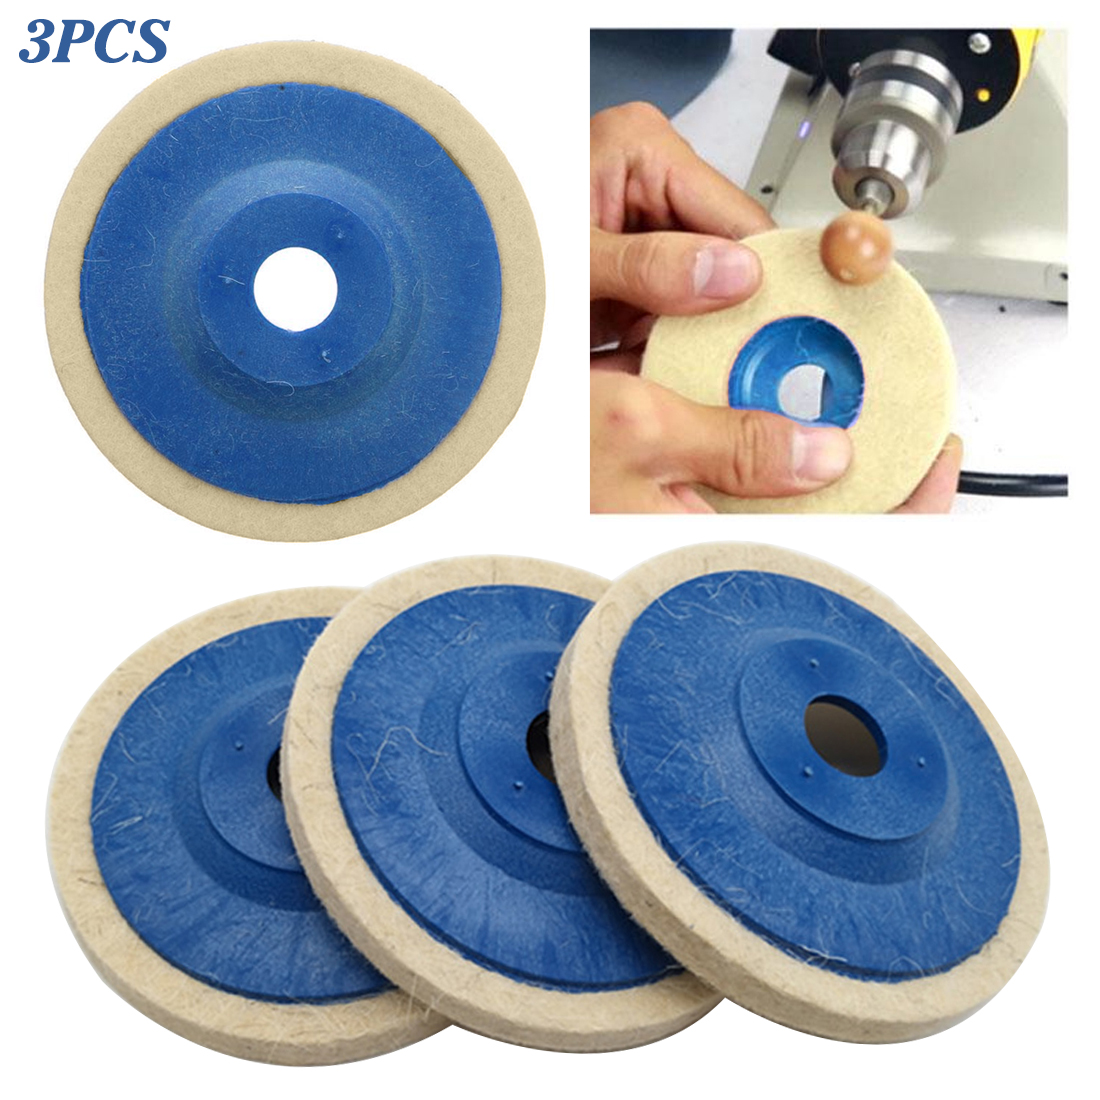 100mm Wool Polishing Wheel Buffing Pads Angle Grinder Wheel Felt Polishing Disc For Metal Marble Glass Ceramics 3PCS